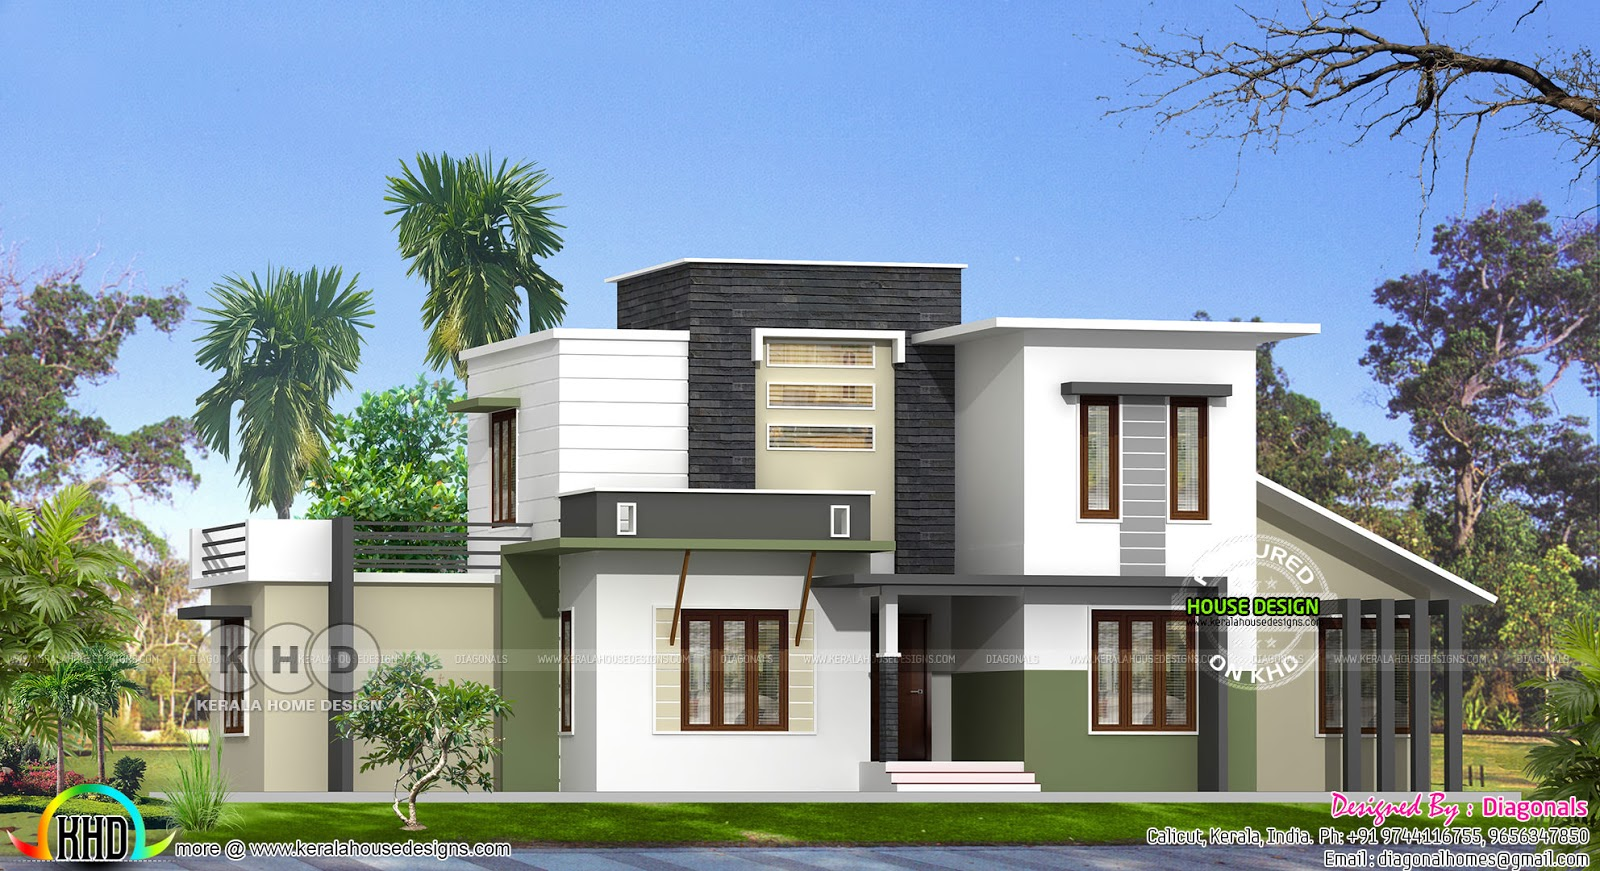 Modern Flat Roof 4 Bedroom House Architecture Kerala